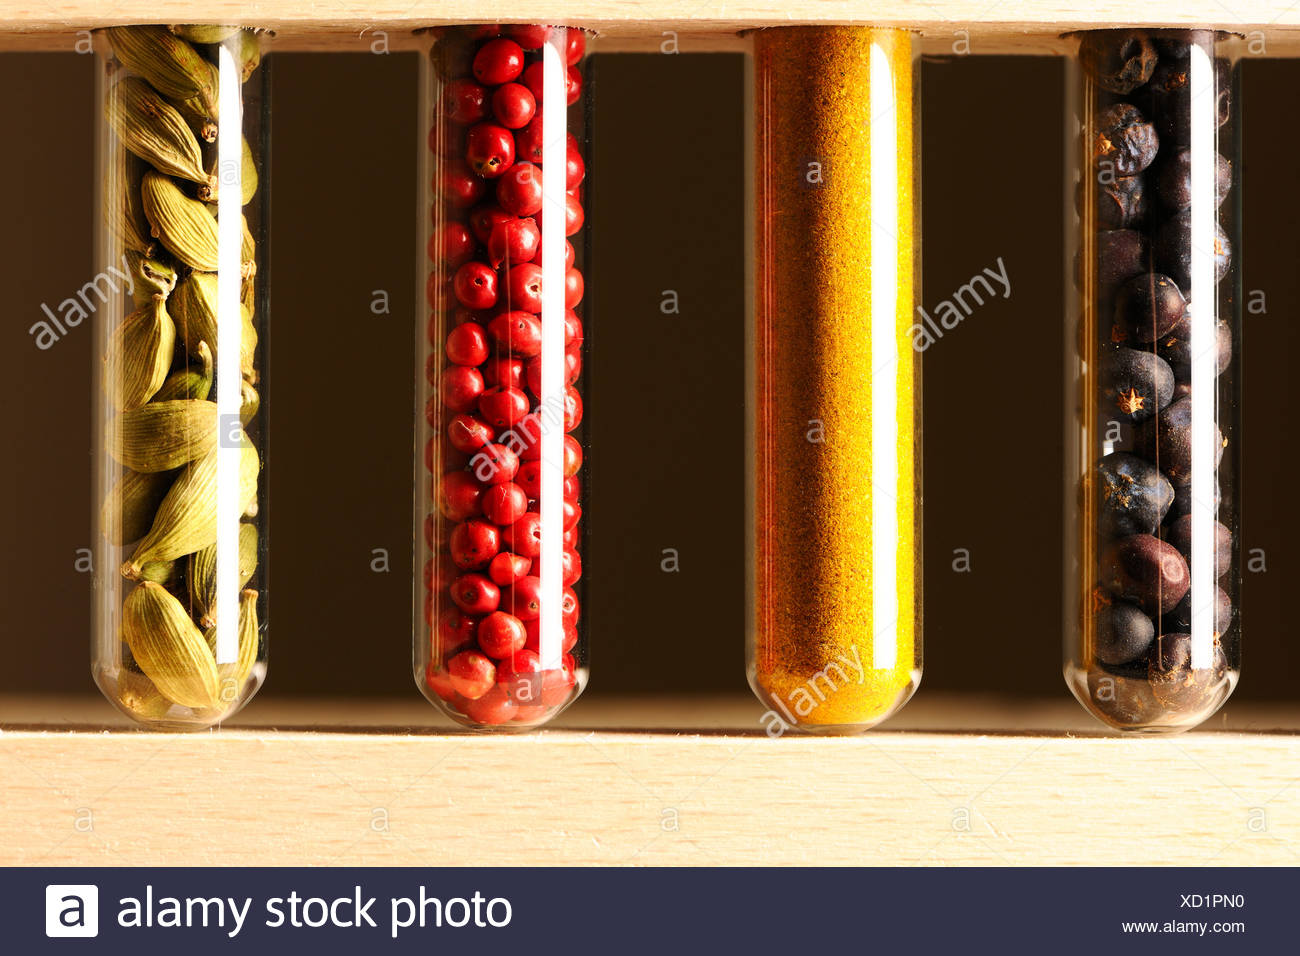 Spices in beakers - Stock Image